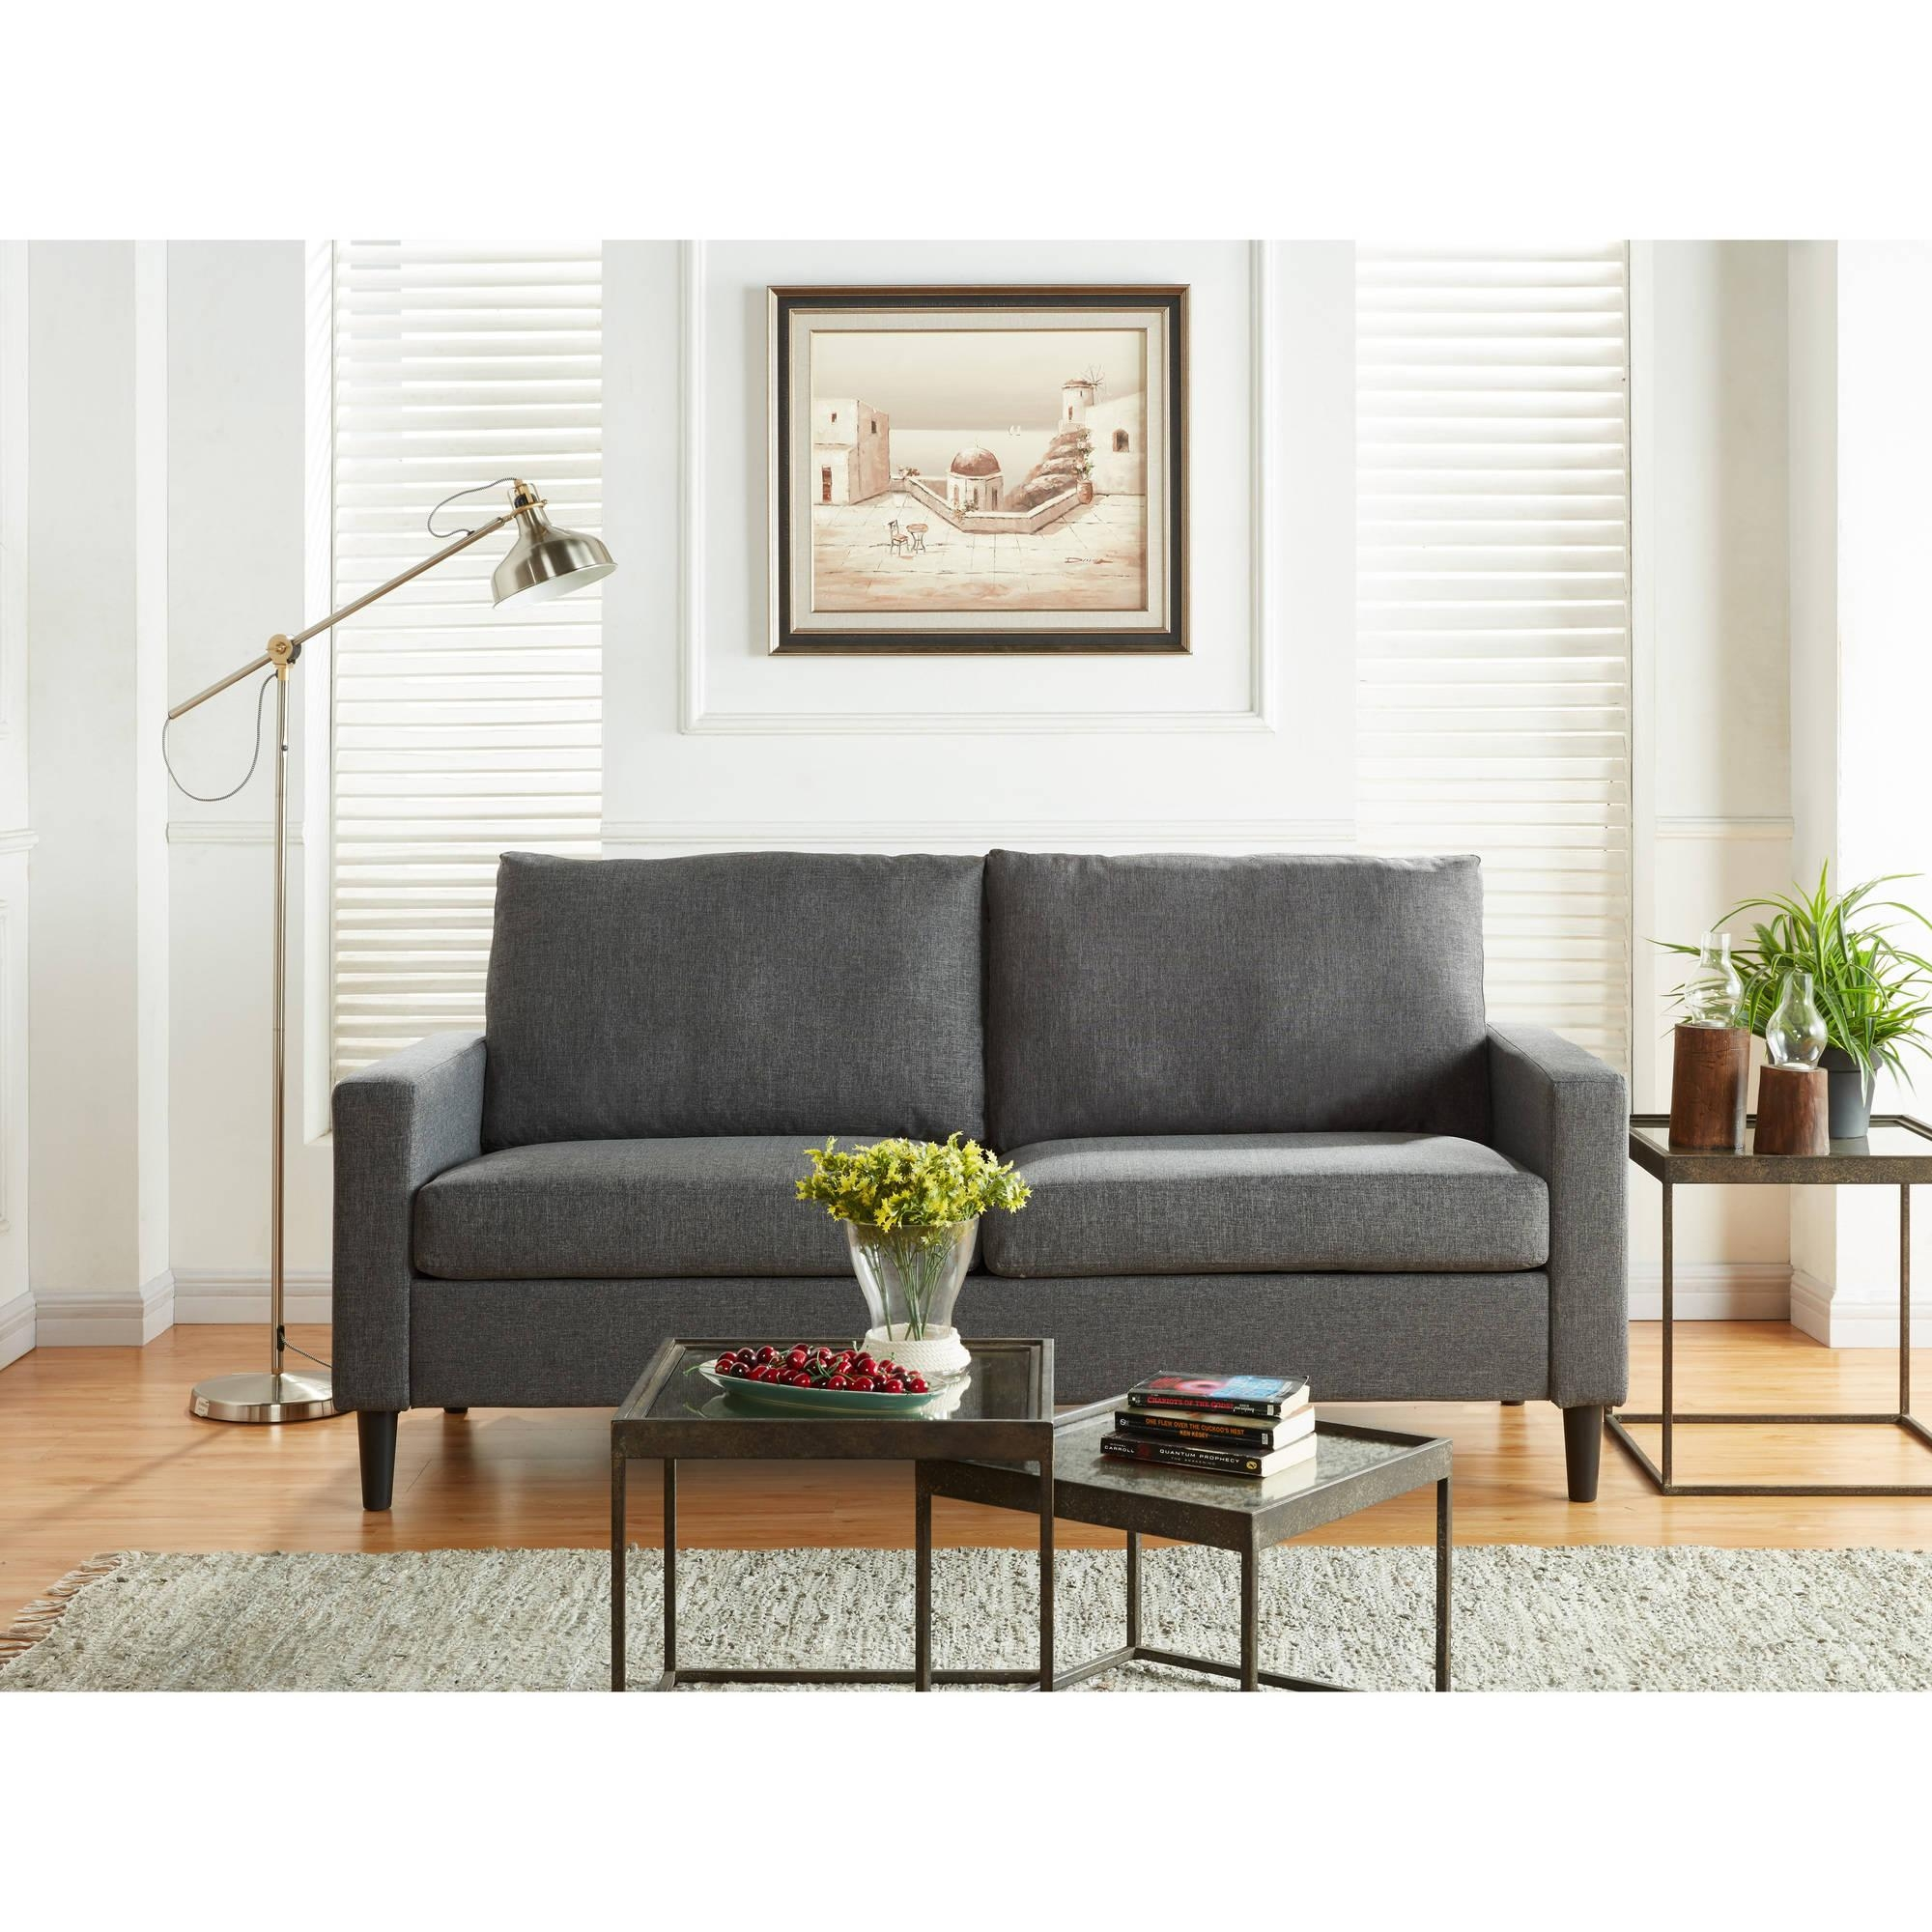 Sectional Sleeper Sofas Regarding Sectional Sleepers (View 3 of 20)